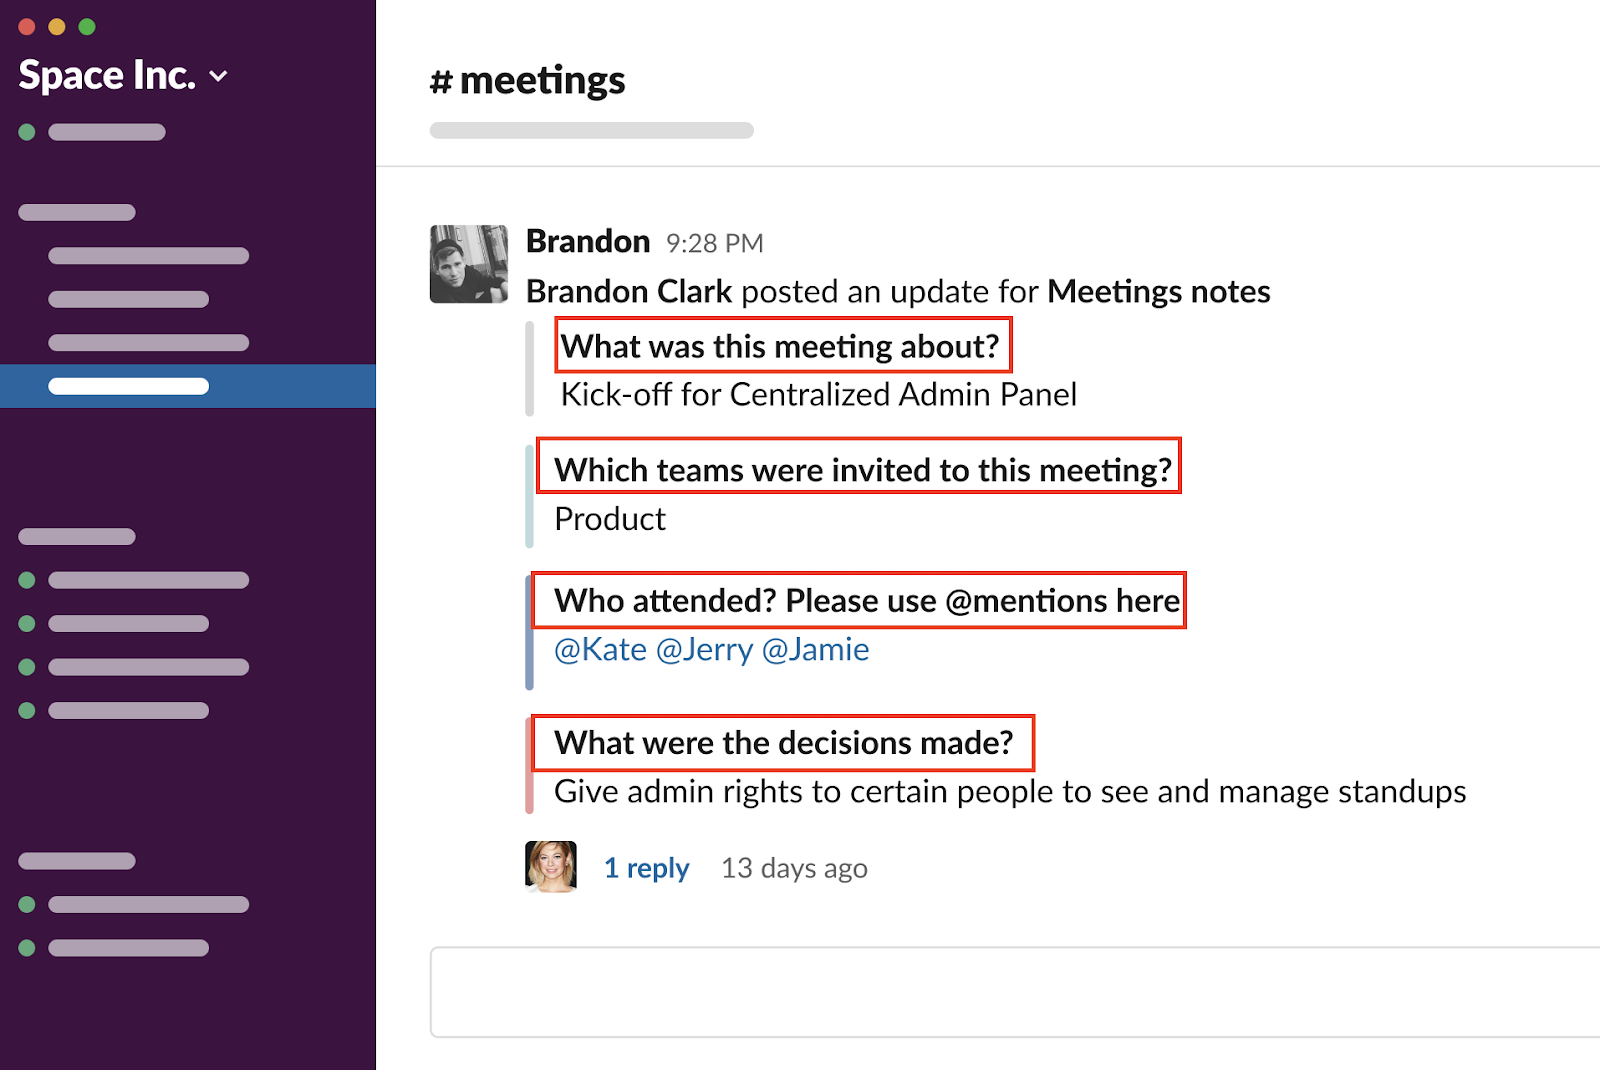 Geekbot allows you to easily setup #meeting channels as well with consistent questions to keep everyone on the same page.